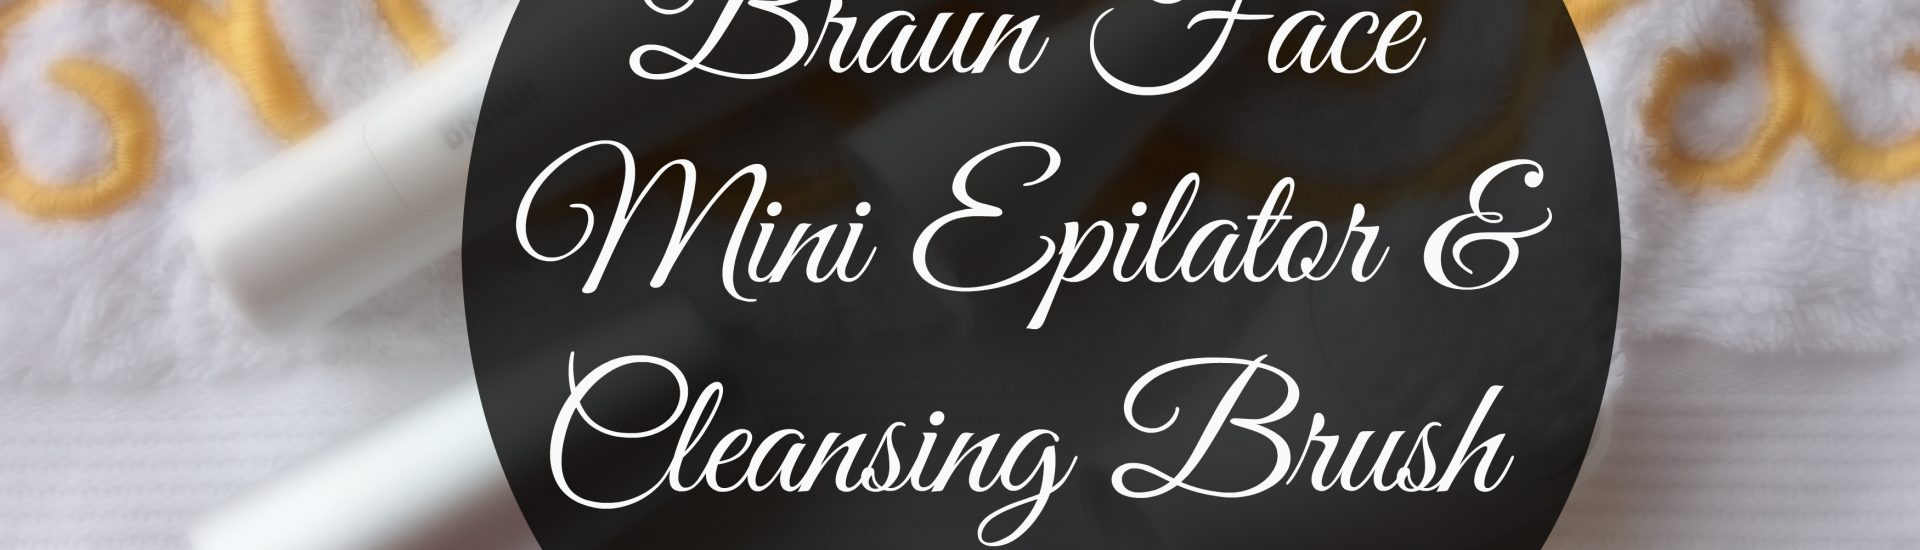 Braun Face Mini Epilator and Cleansing Brush Review